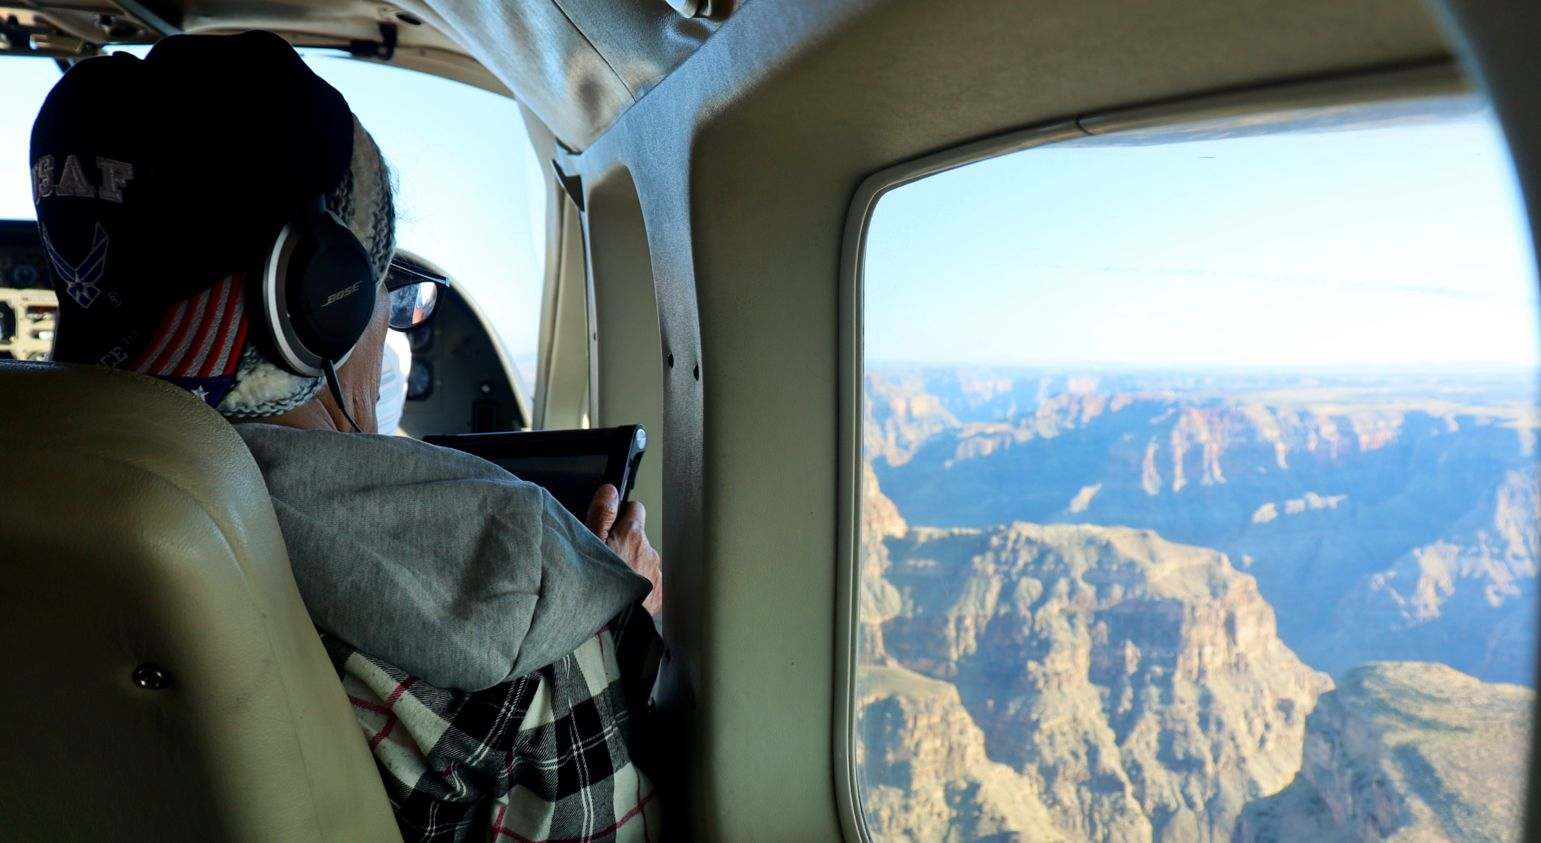 A man aboard a Grand Canyon airplane tour takes a photo of the landscape through his window using his phone.